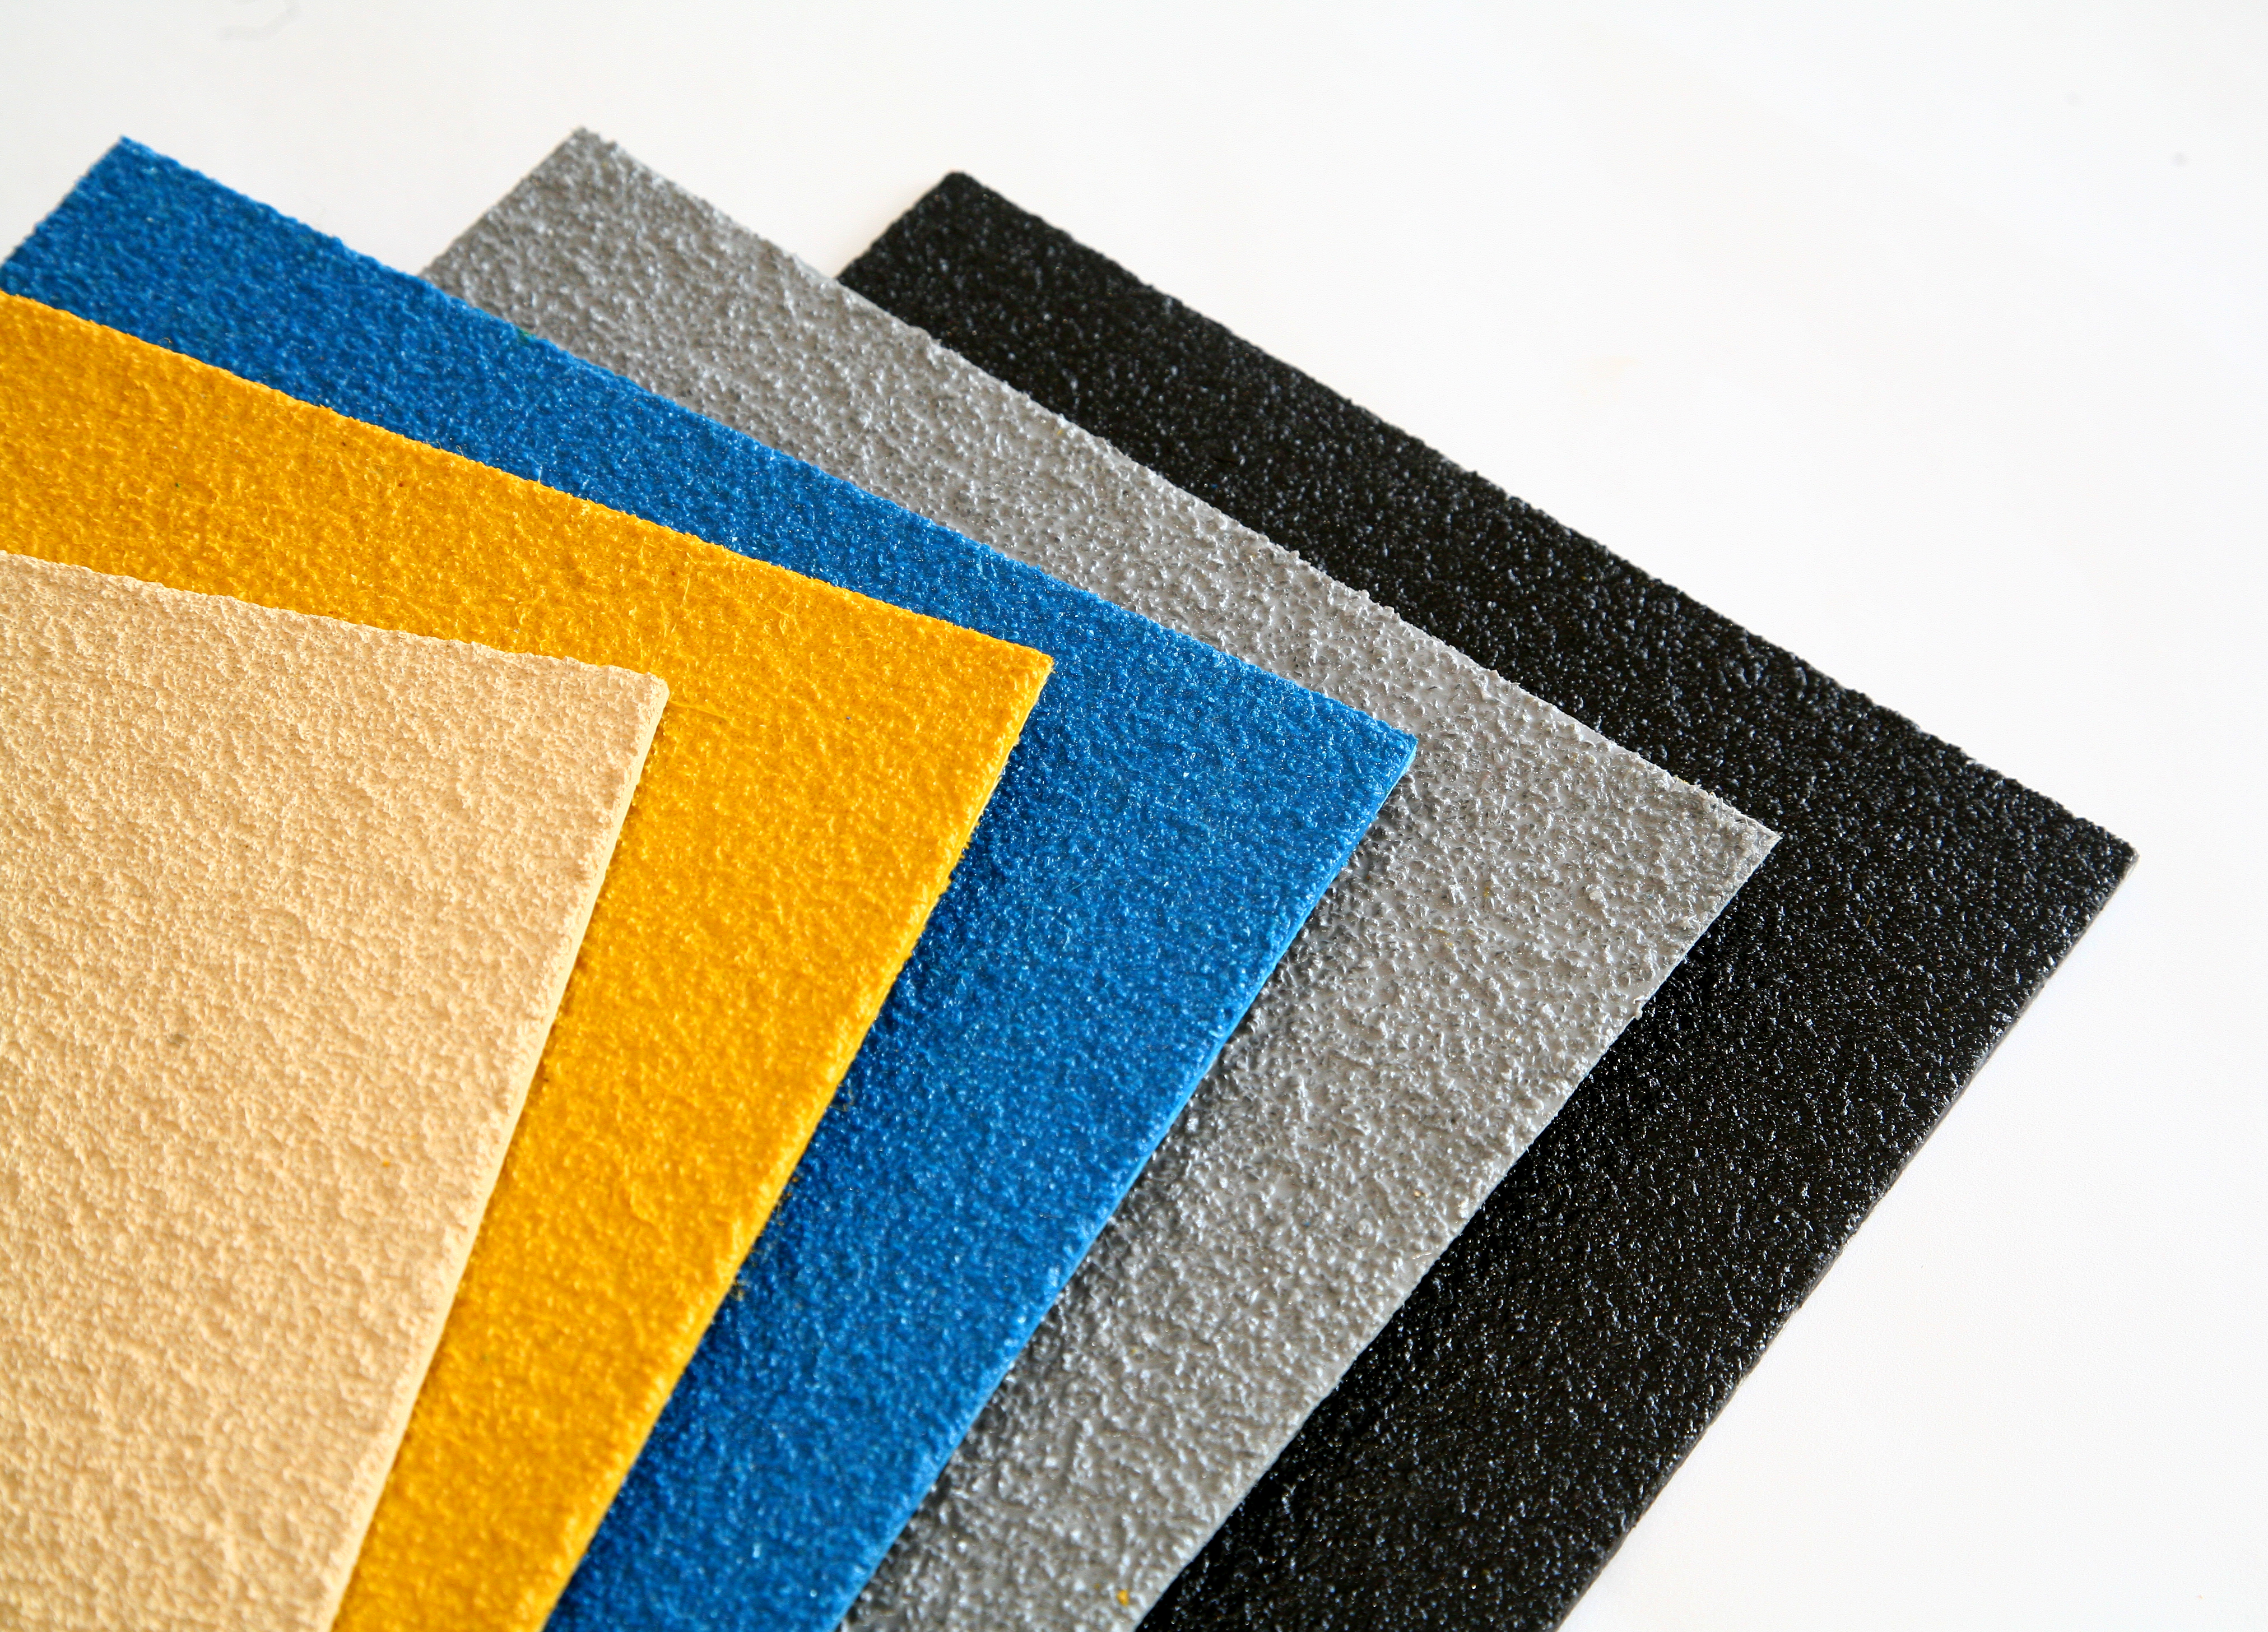 Anti Slip Coatings For Stairs : Grp anti slip stair treads noses direct from manufacturer